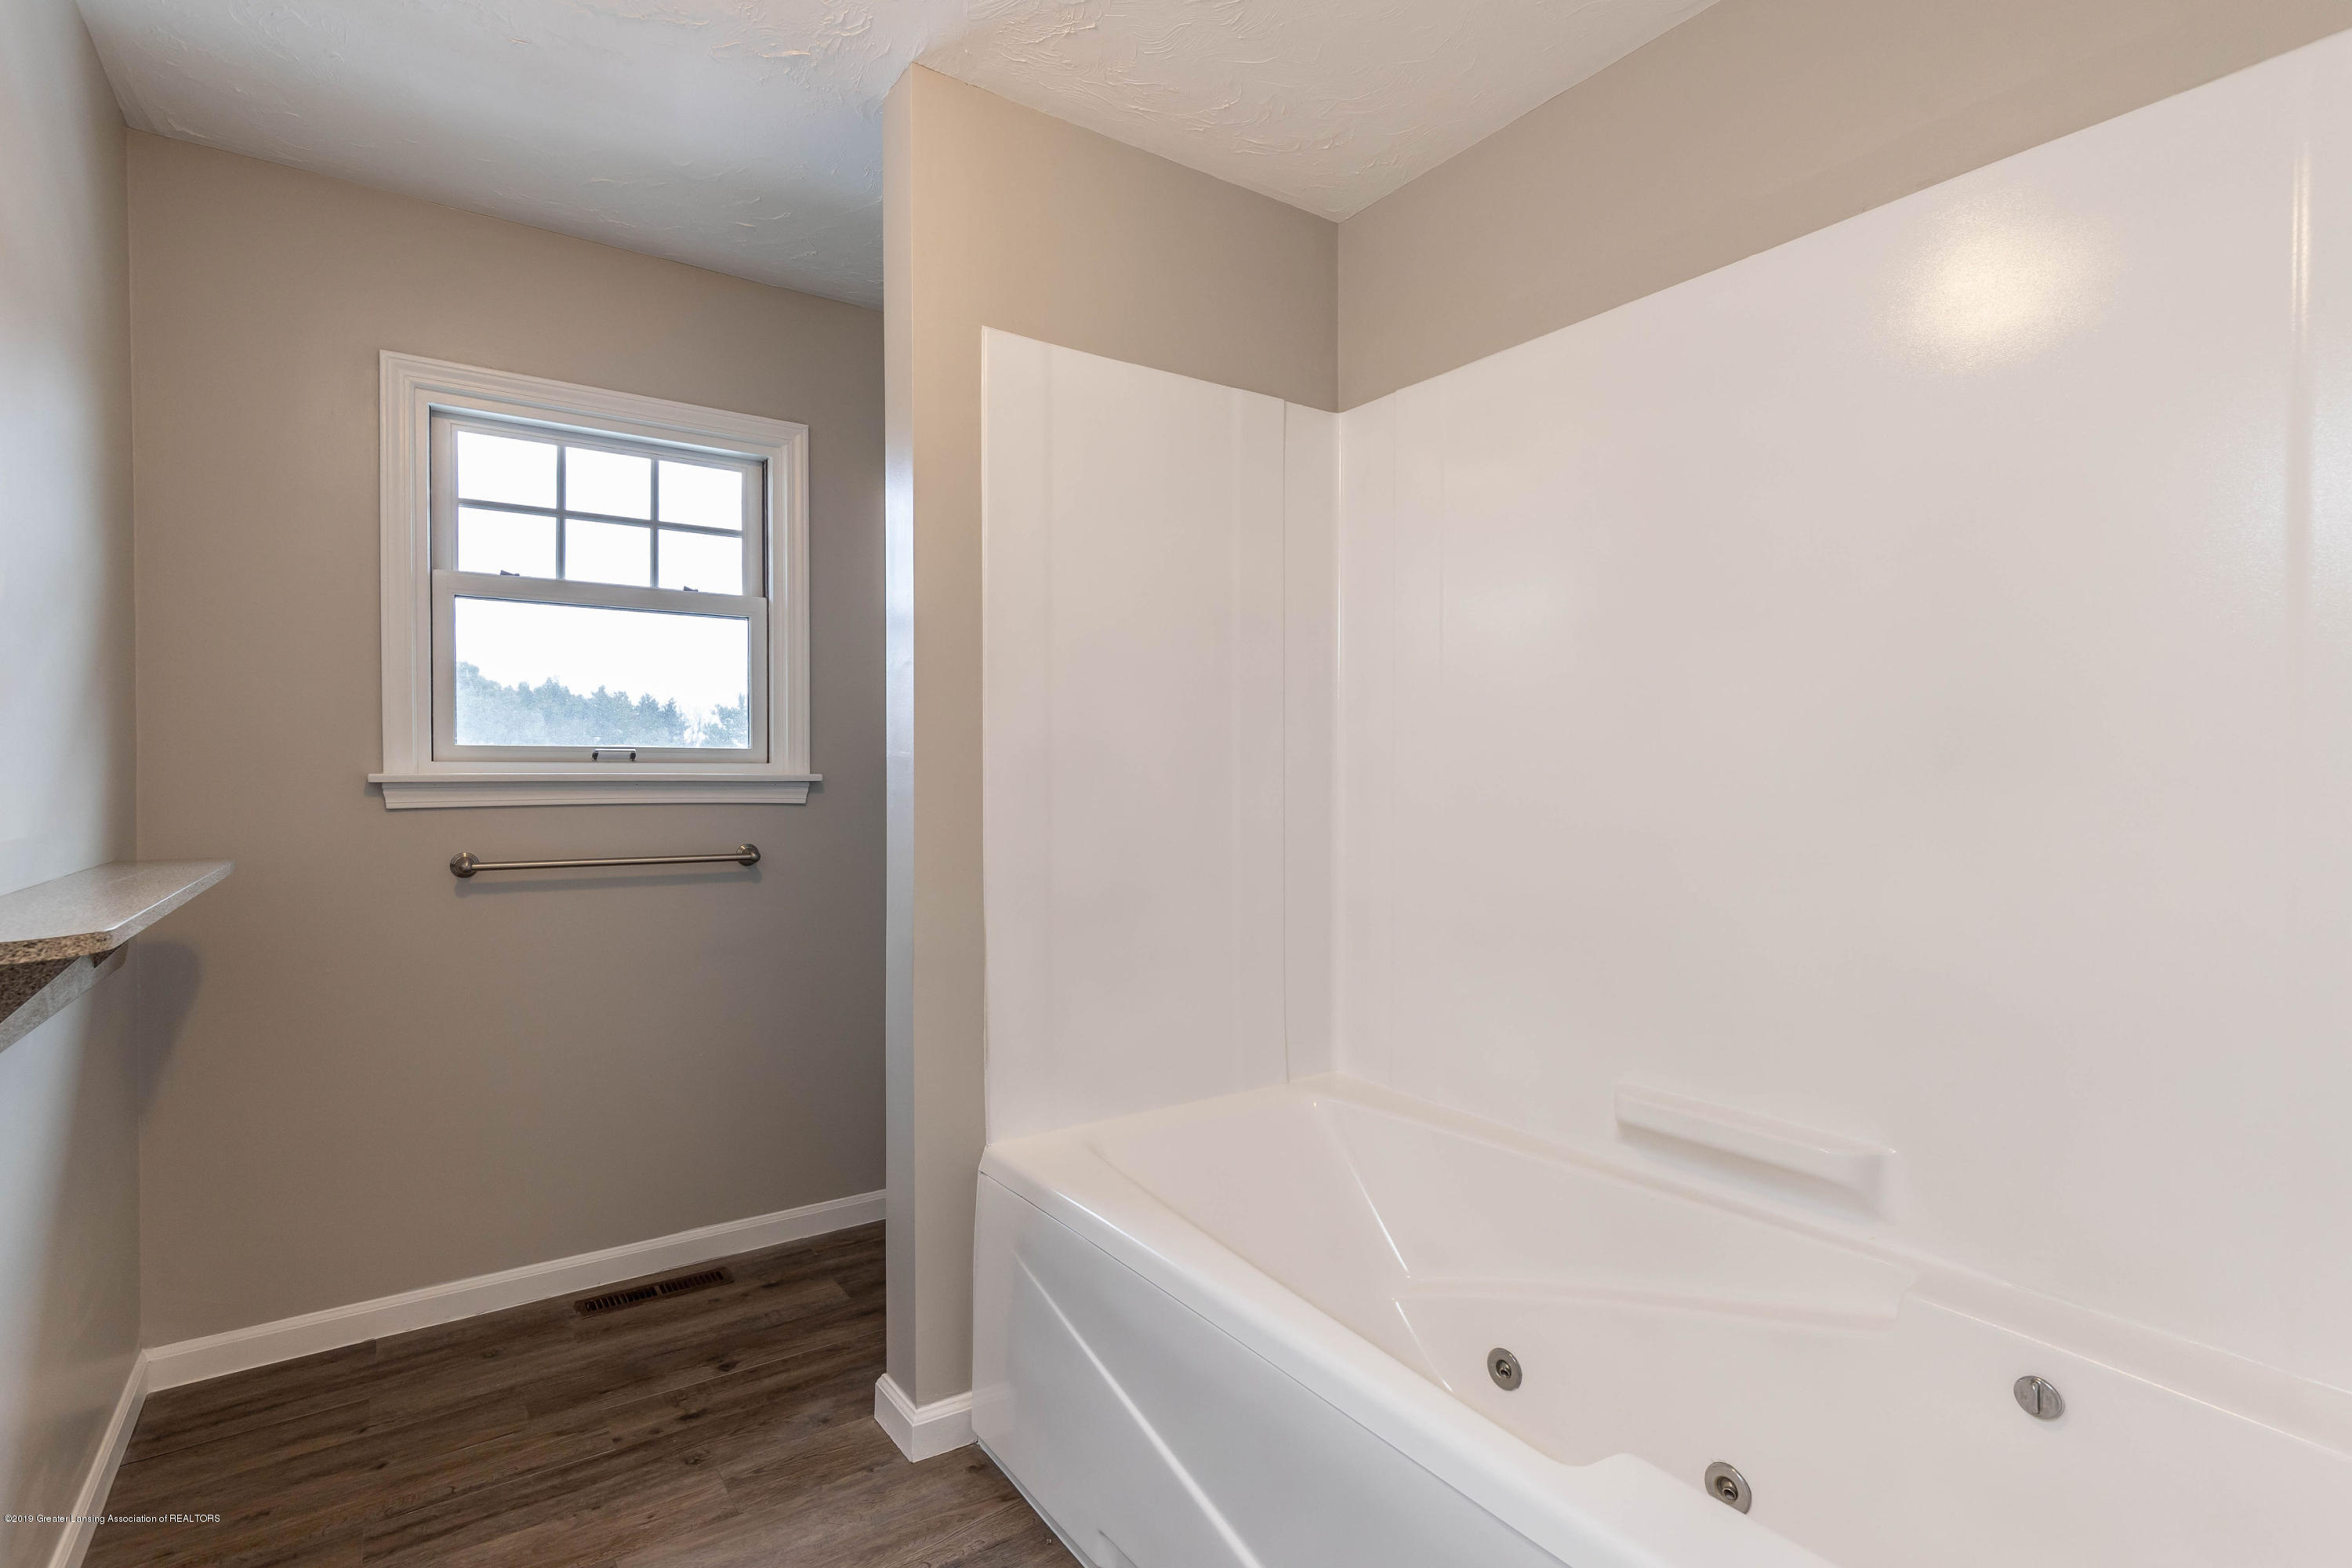 3075 W Mead Rd - meadbath2 - 29